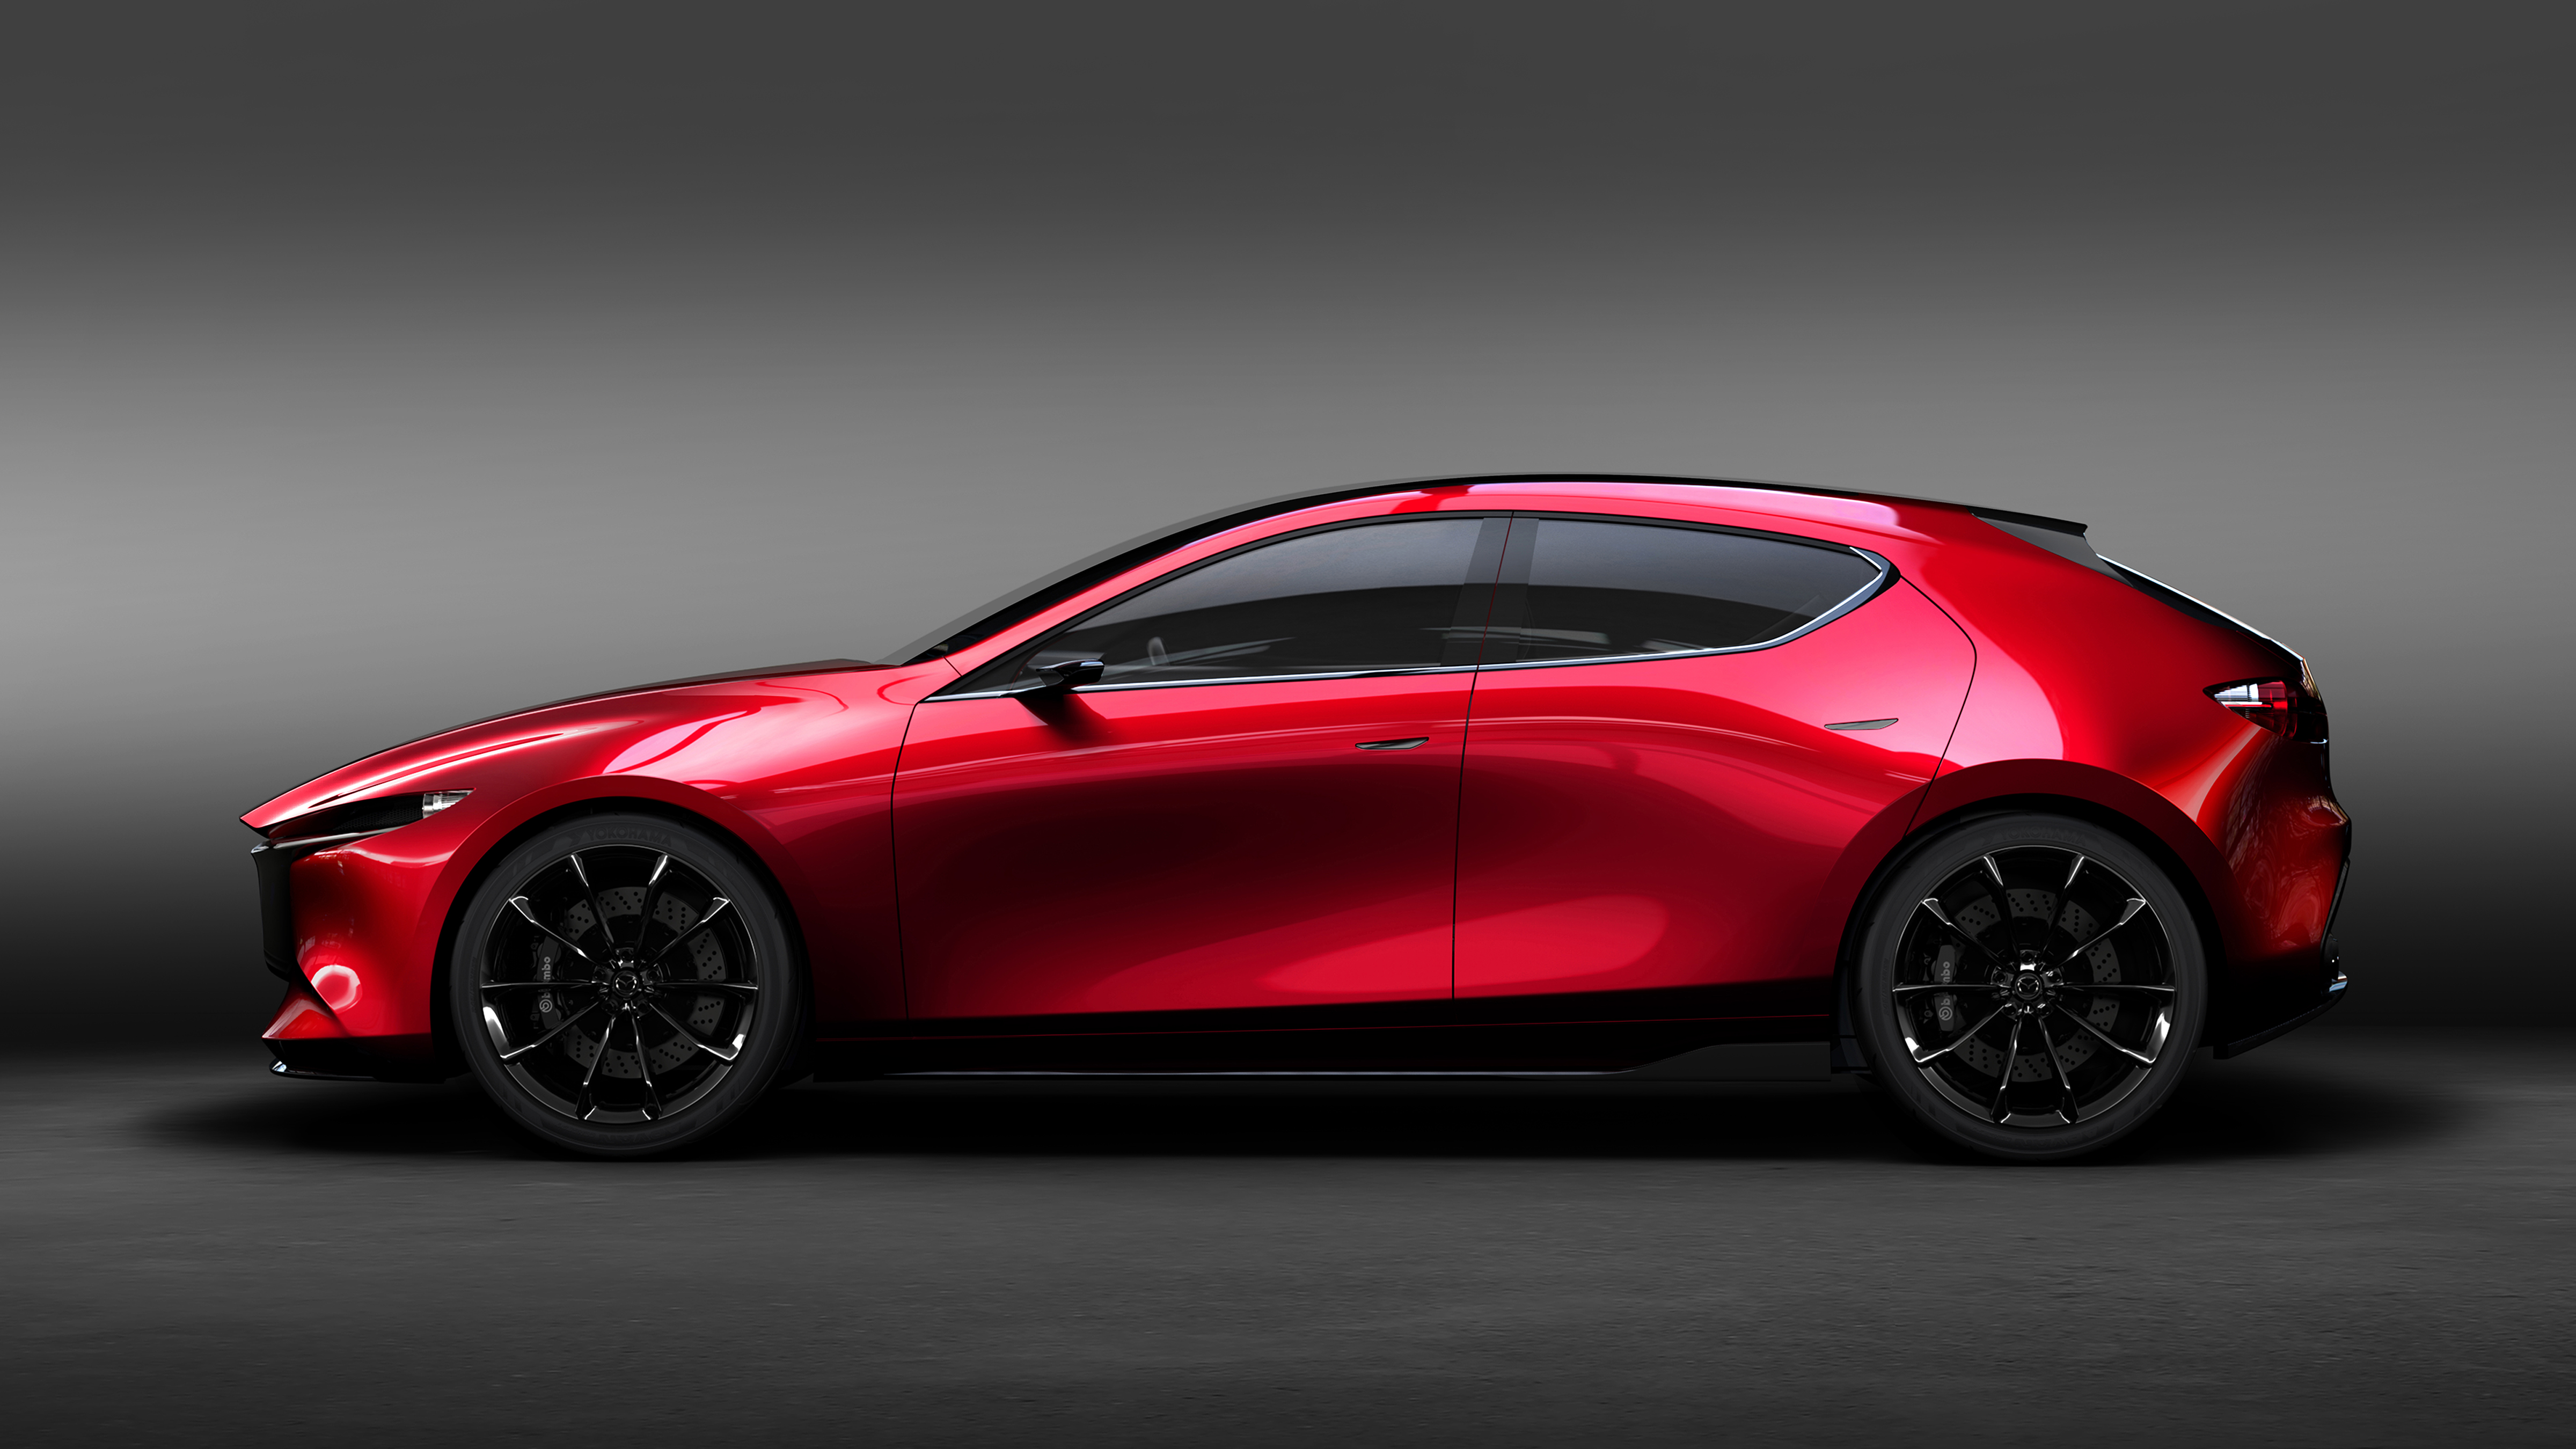 Mazda s Twin Tokyo Motor Show Concepts Preview a Gorgeous Future